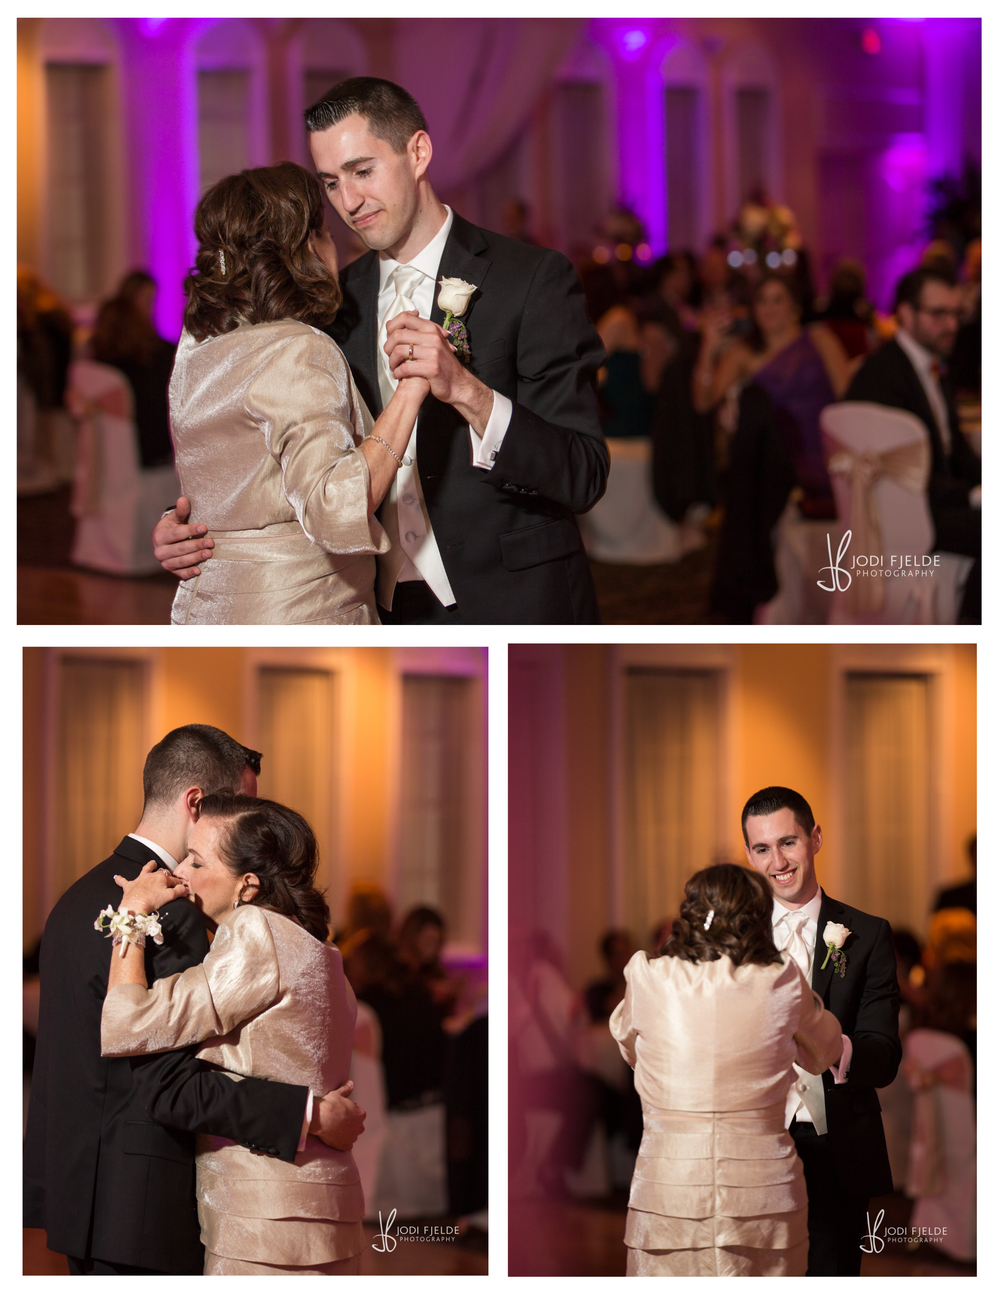 Benvenuto_Palm_Beach_Wedding_Jewish_Michelle & Jason_Jodi_Fjedle_Photography 62.jpg